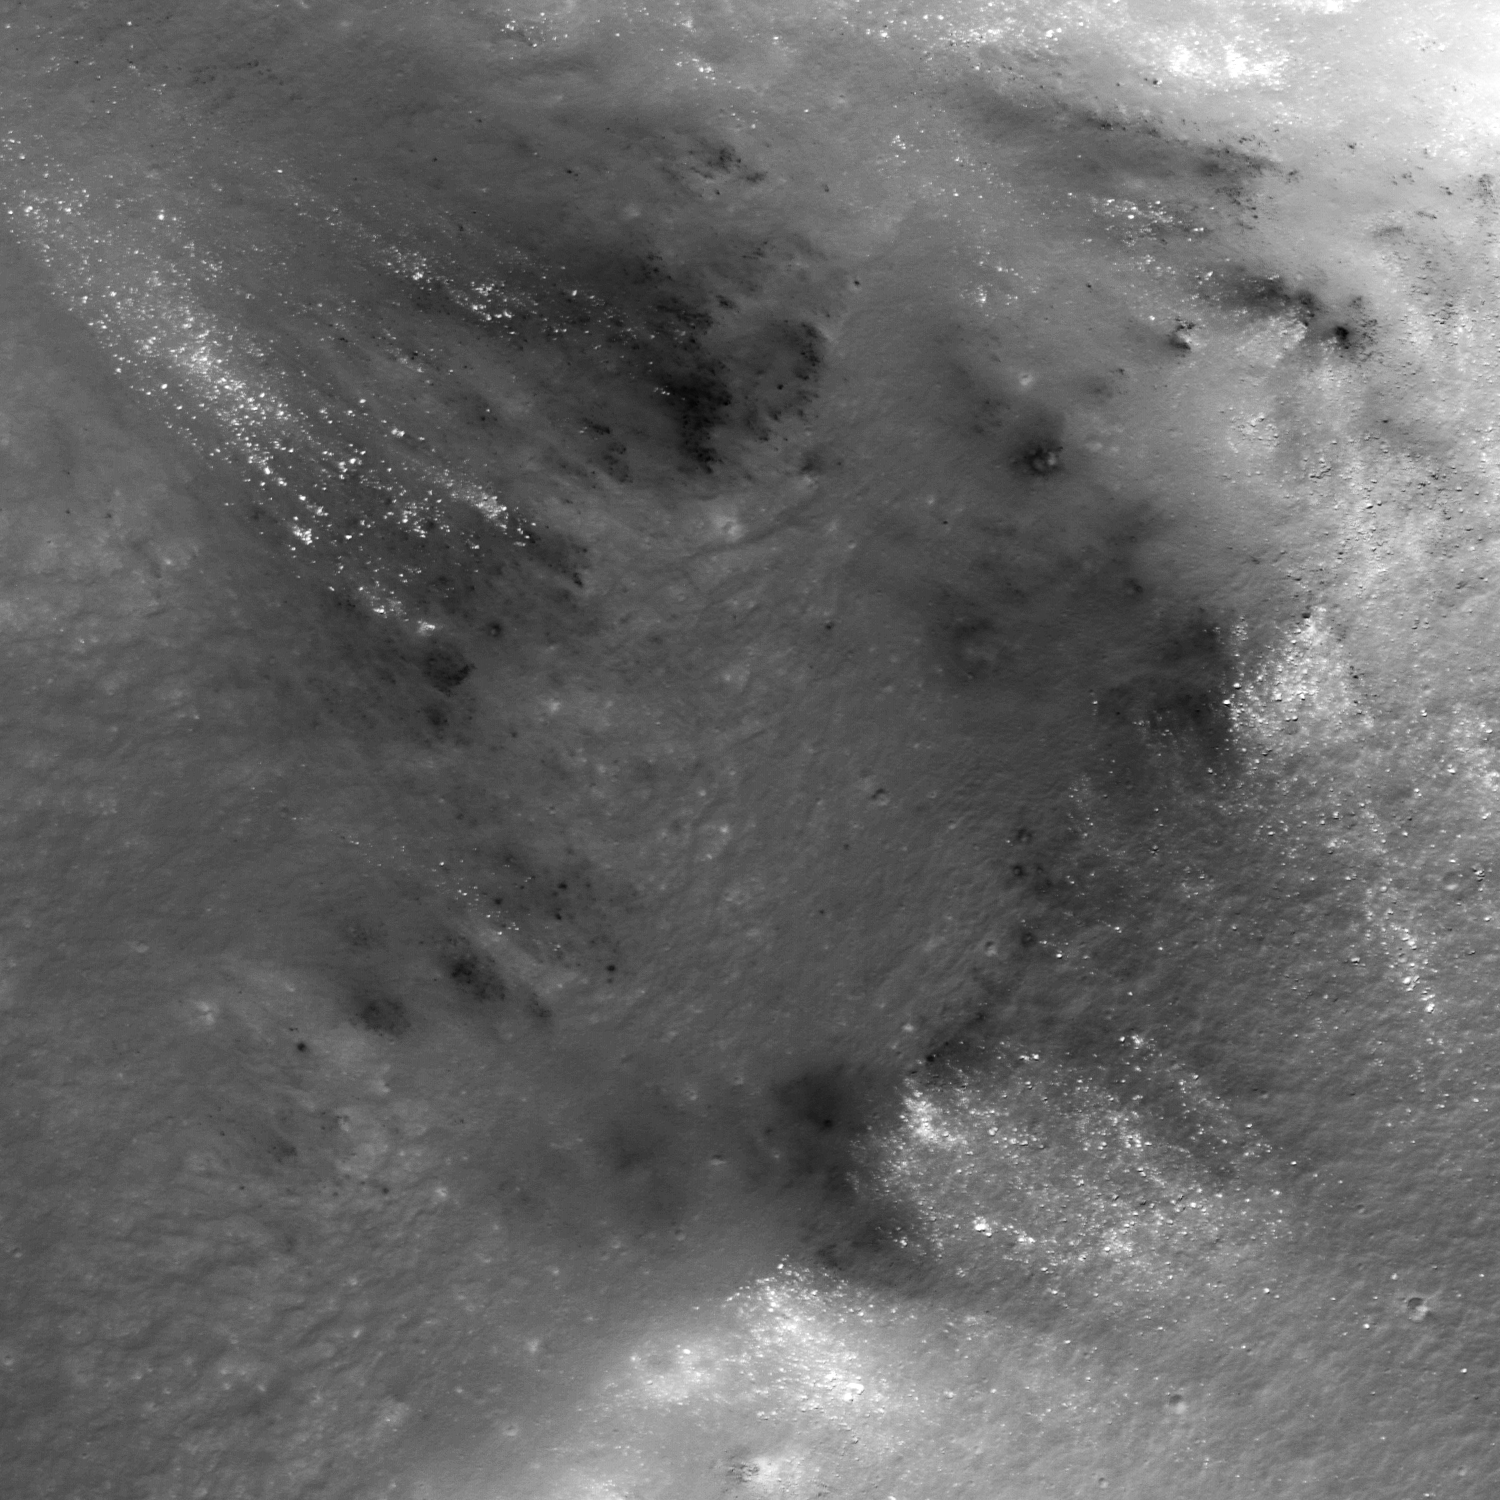 sports shoes 0f2a4 d824f ...  vent-like  depressions Lassell G and Lassell K (14.918°S  351.065°E) in  Mare Nubium. LROC Narrow Angle Camera (NAC) observation M1116585481R, LRO  ...